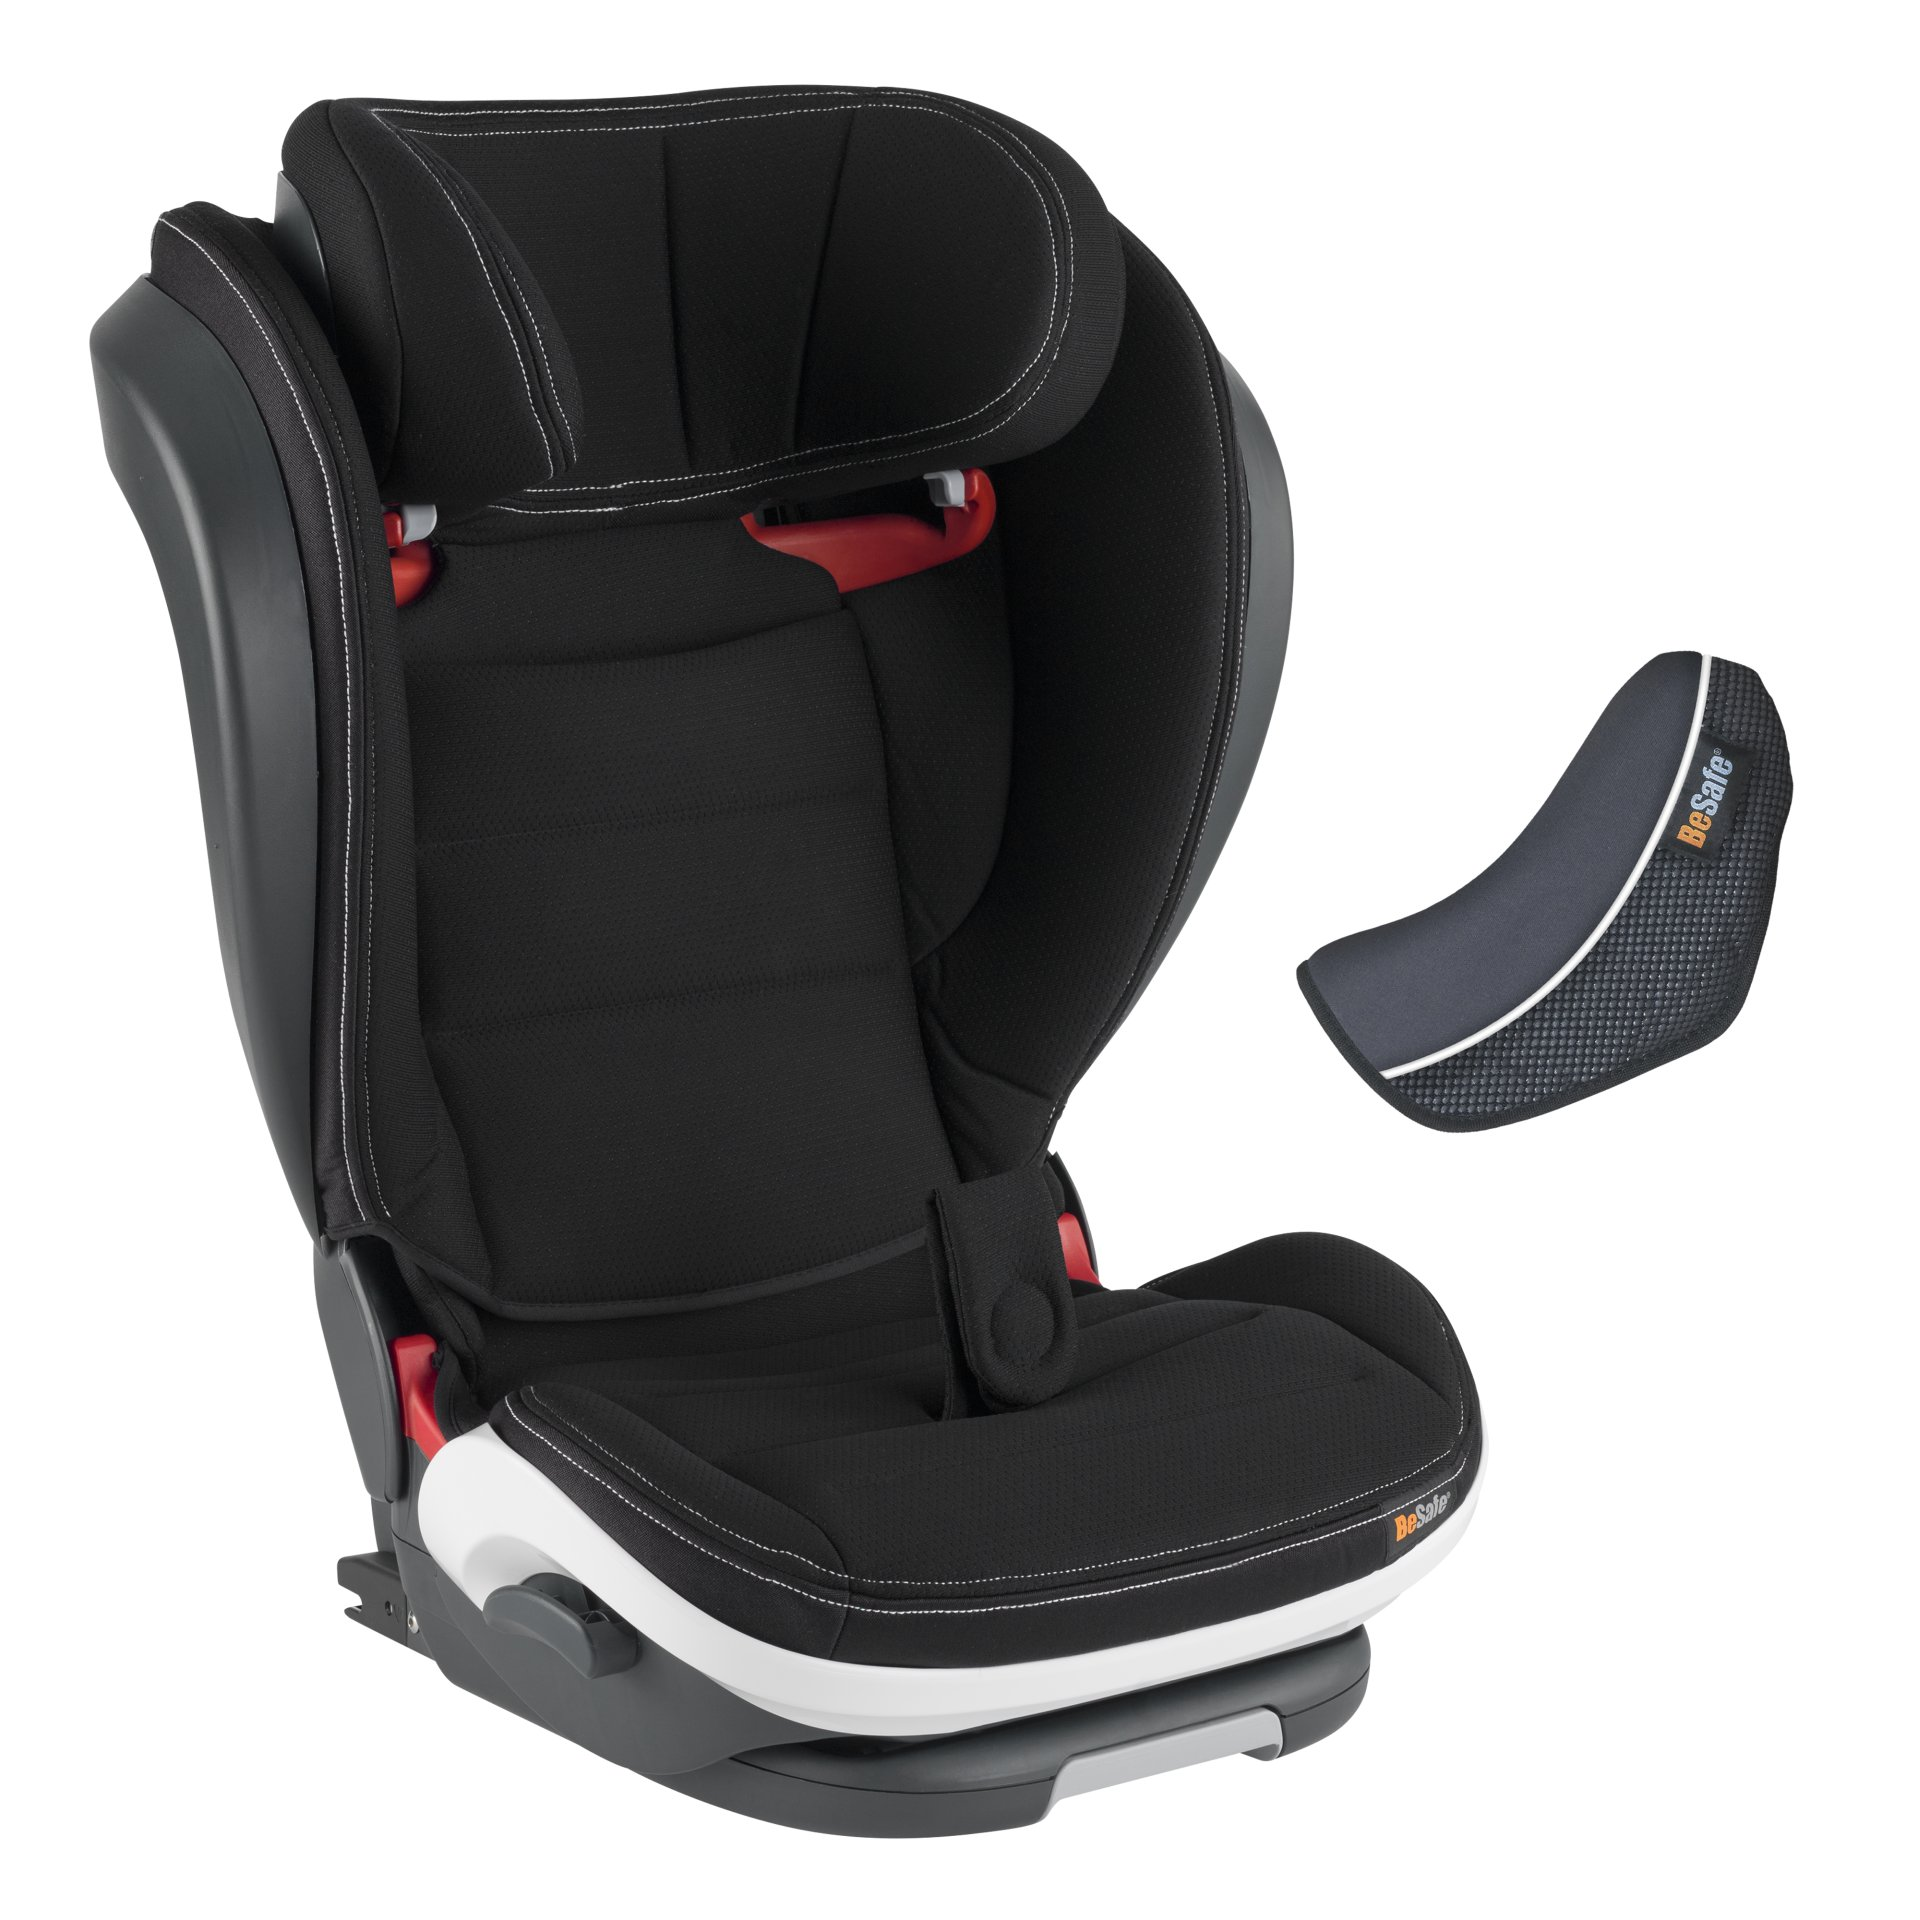 besafe child car seat izi flex fix i size 2020 premium car interior buy at kidsroom car seats. Black Bedroom Furniture Sets. Home Design Ideas